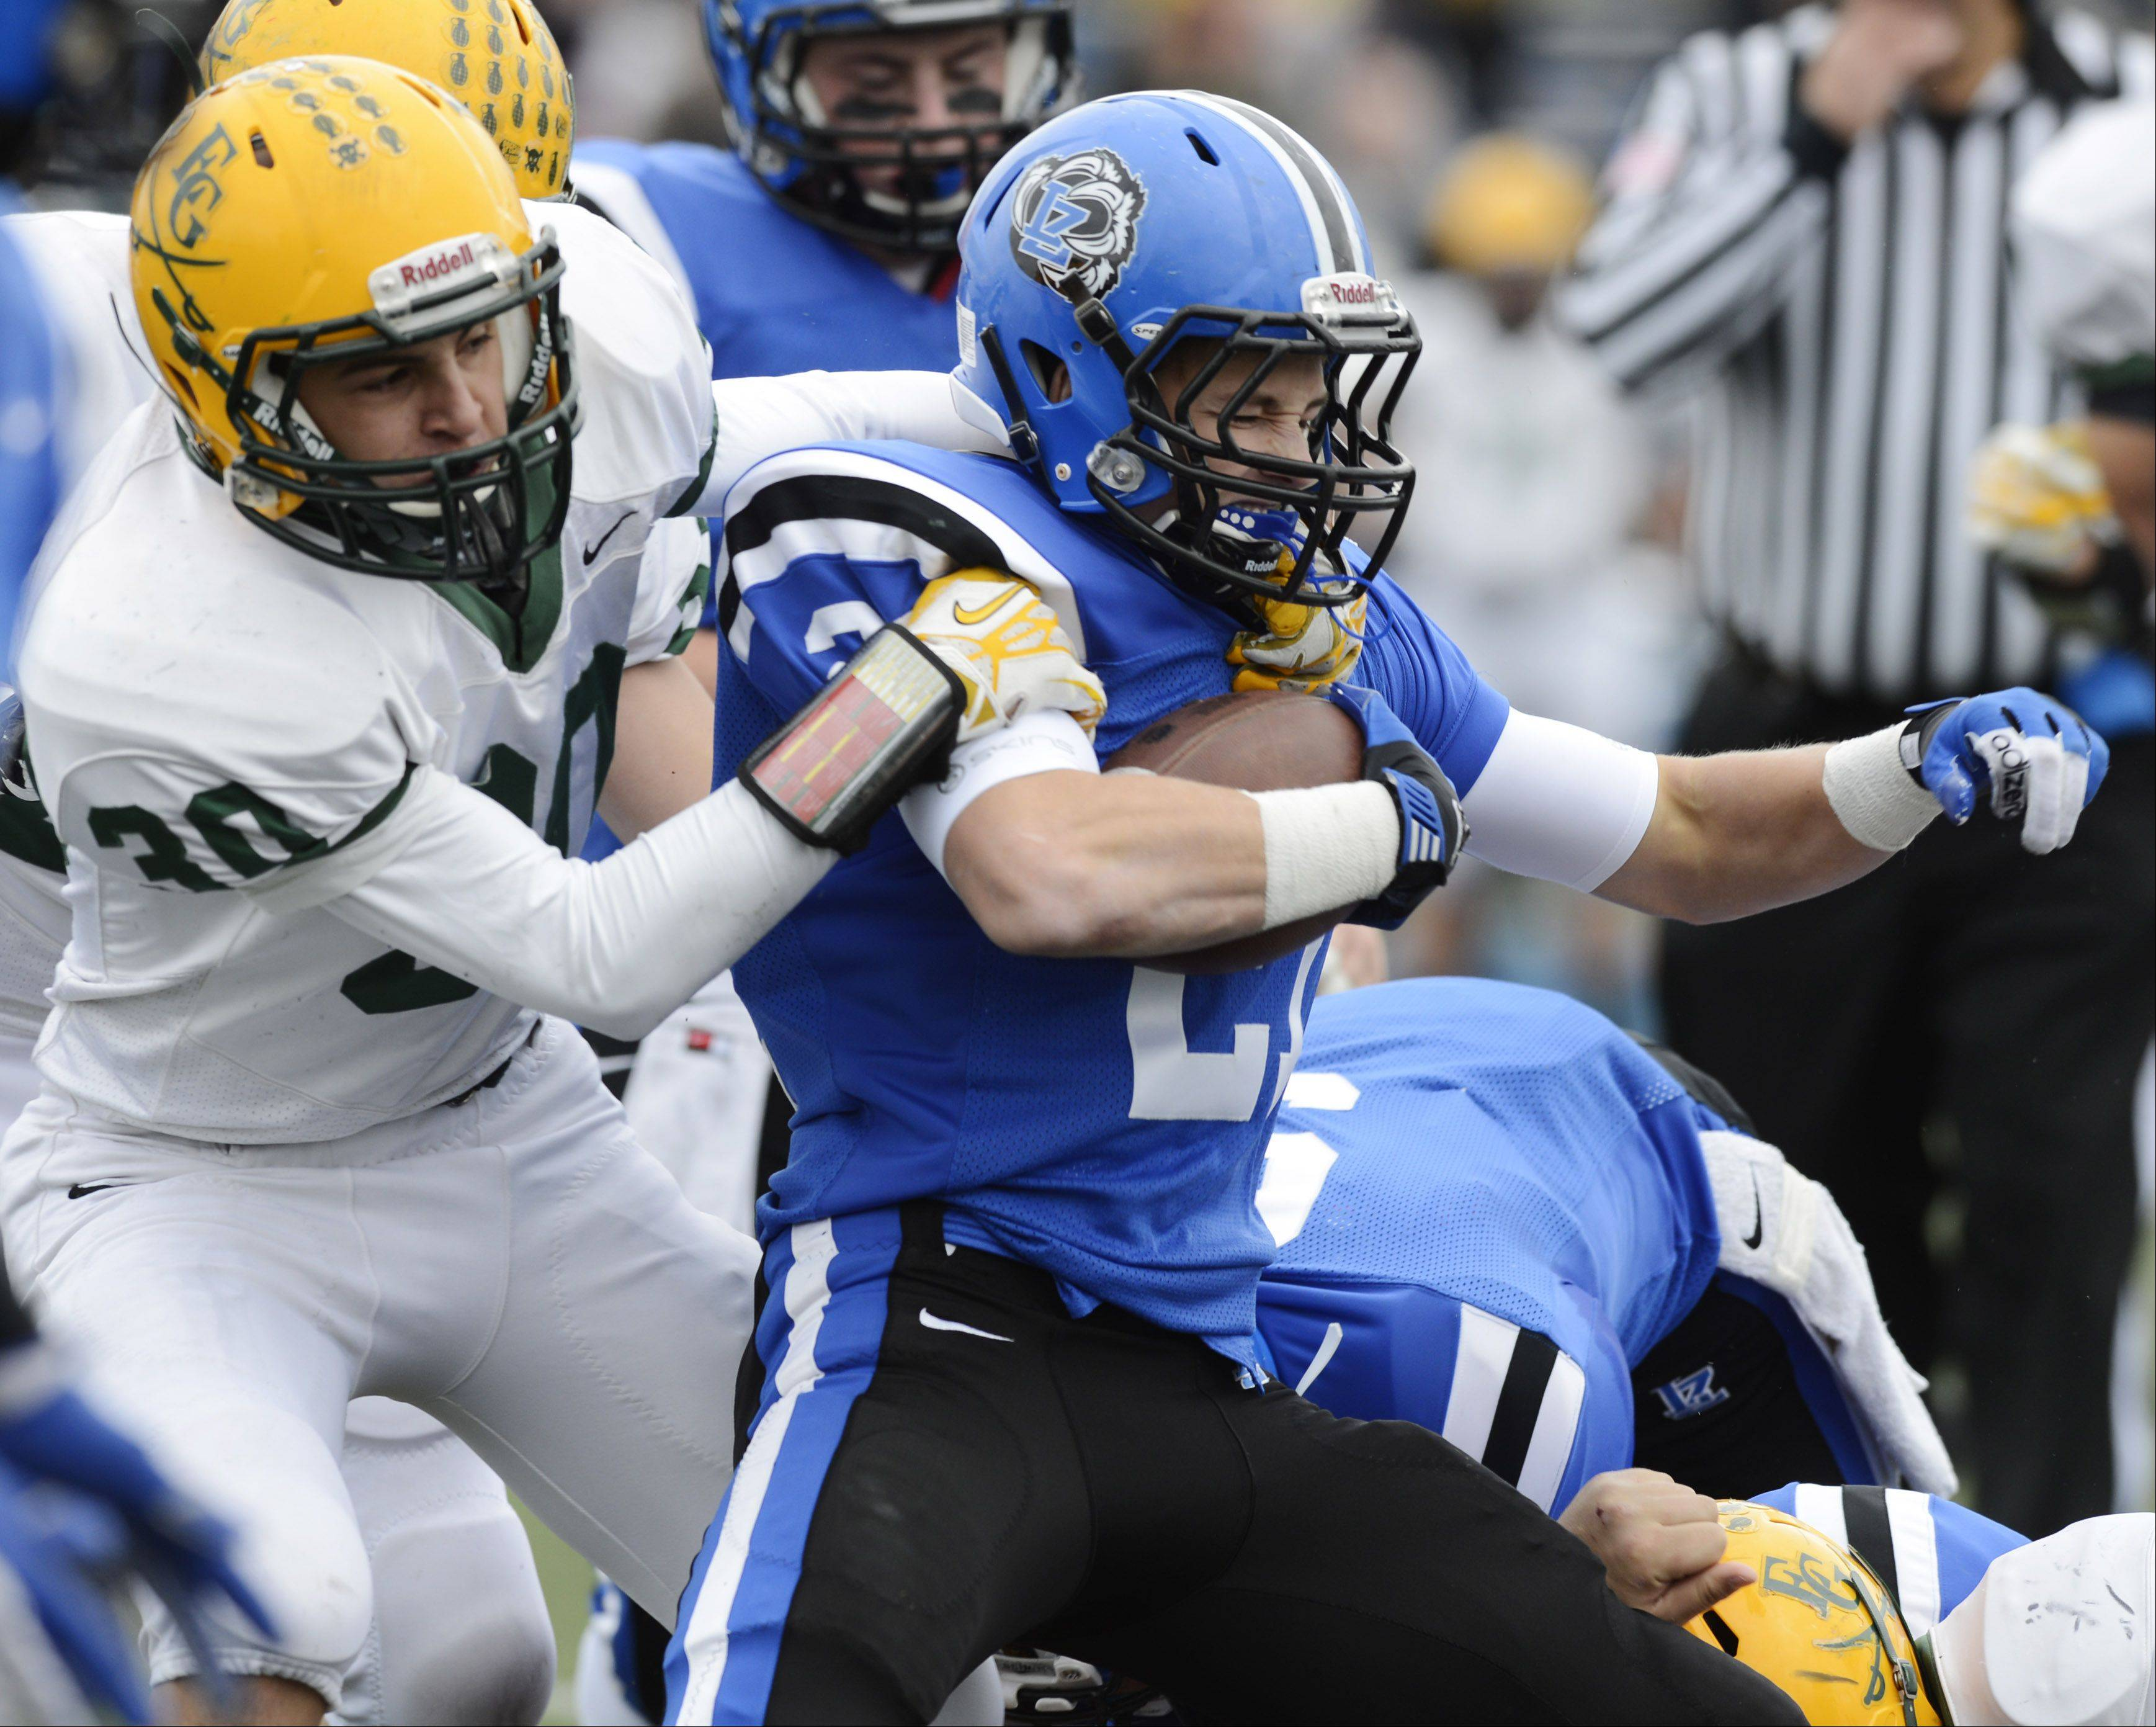 Lake Zurich's Dylan Schassler gets tackled by Elk Grove's Brandon Post during Saturday's Class 7A playoff game.